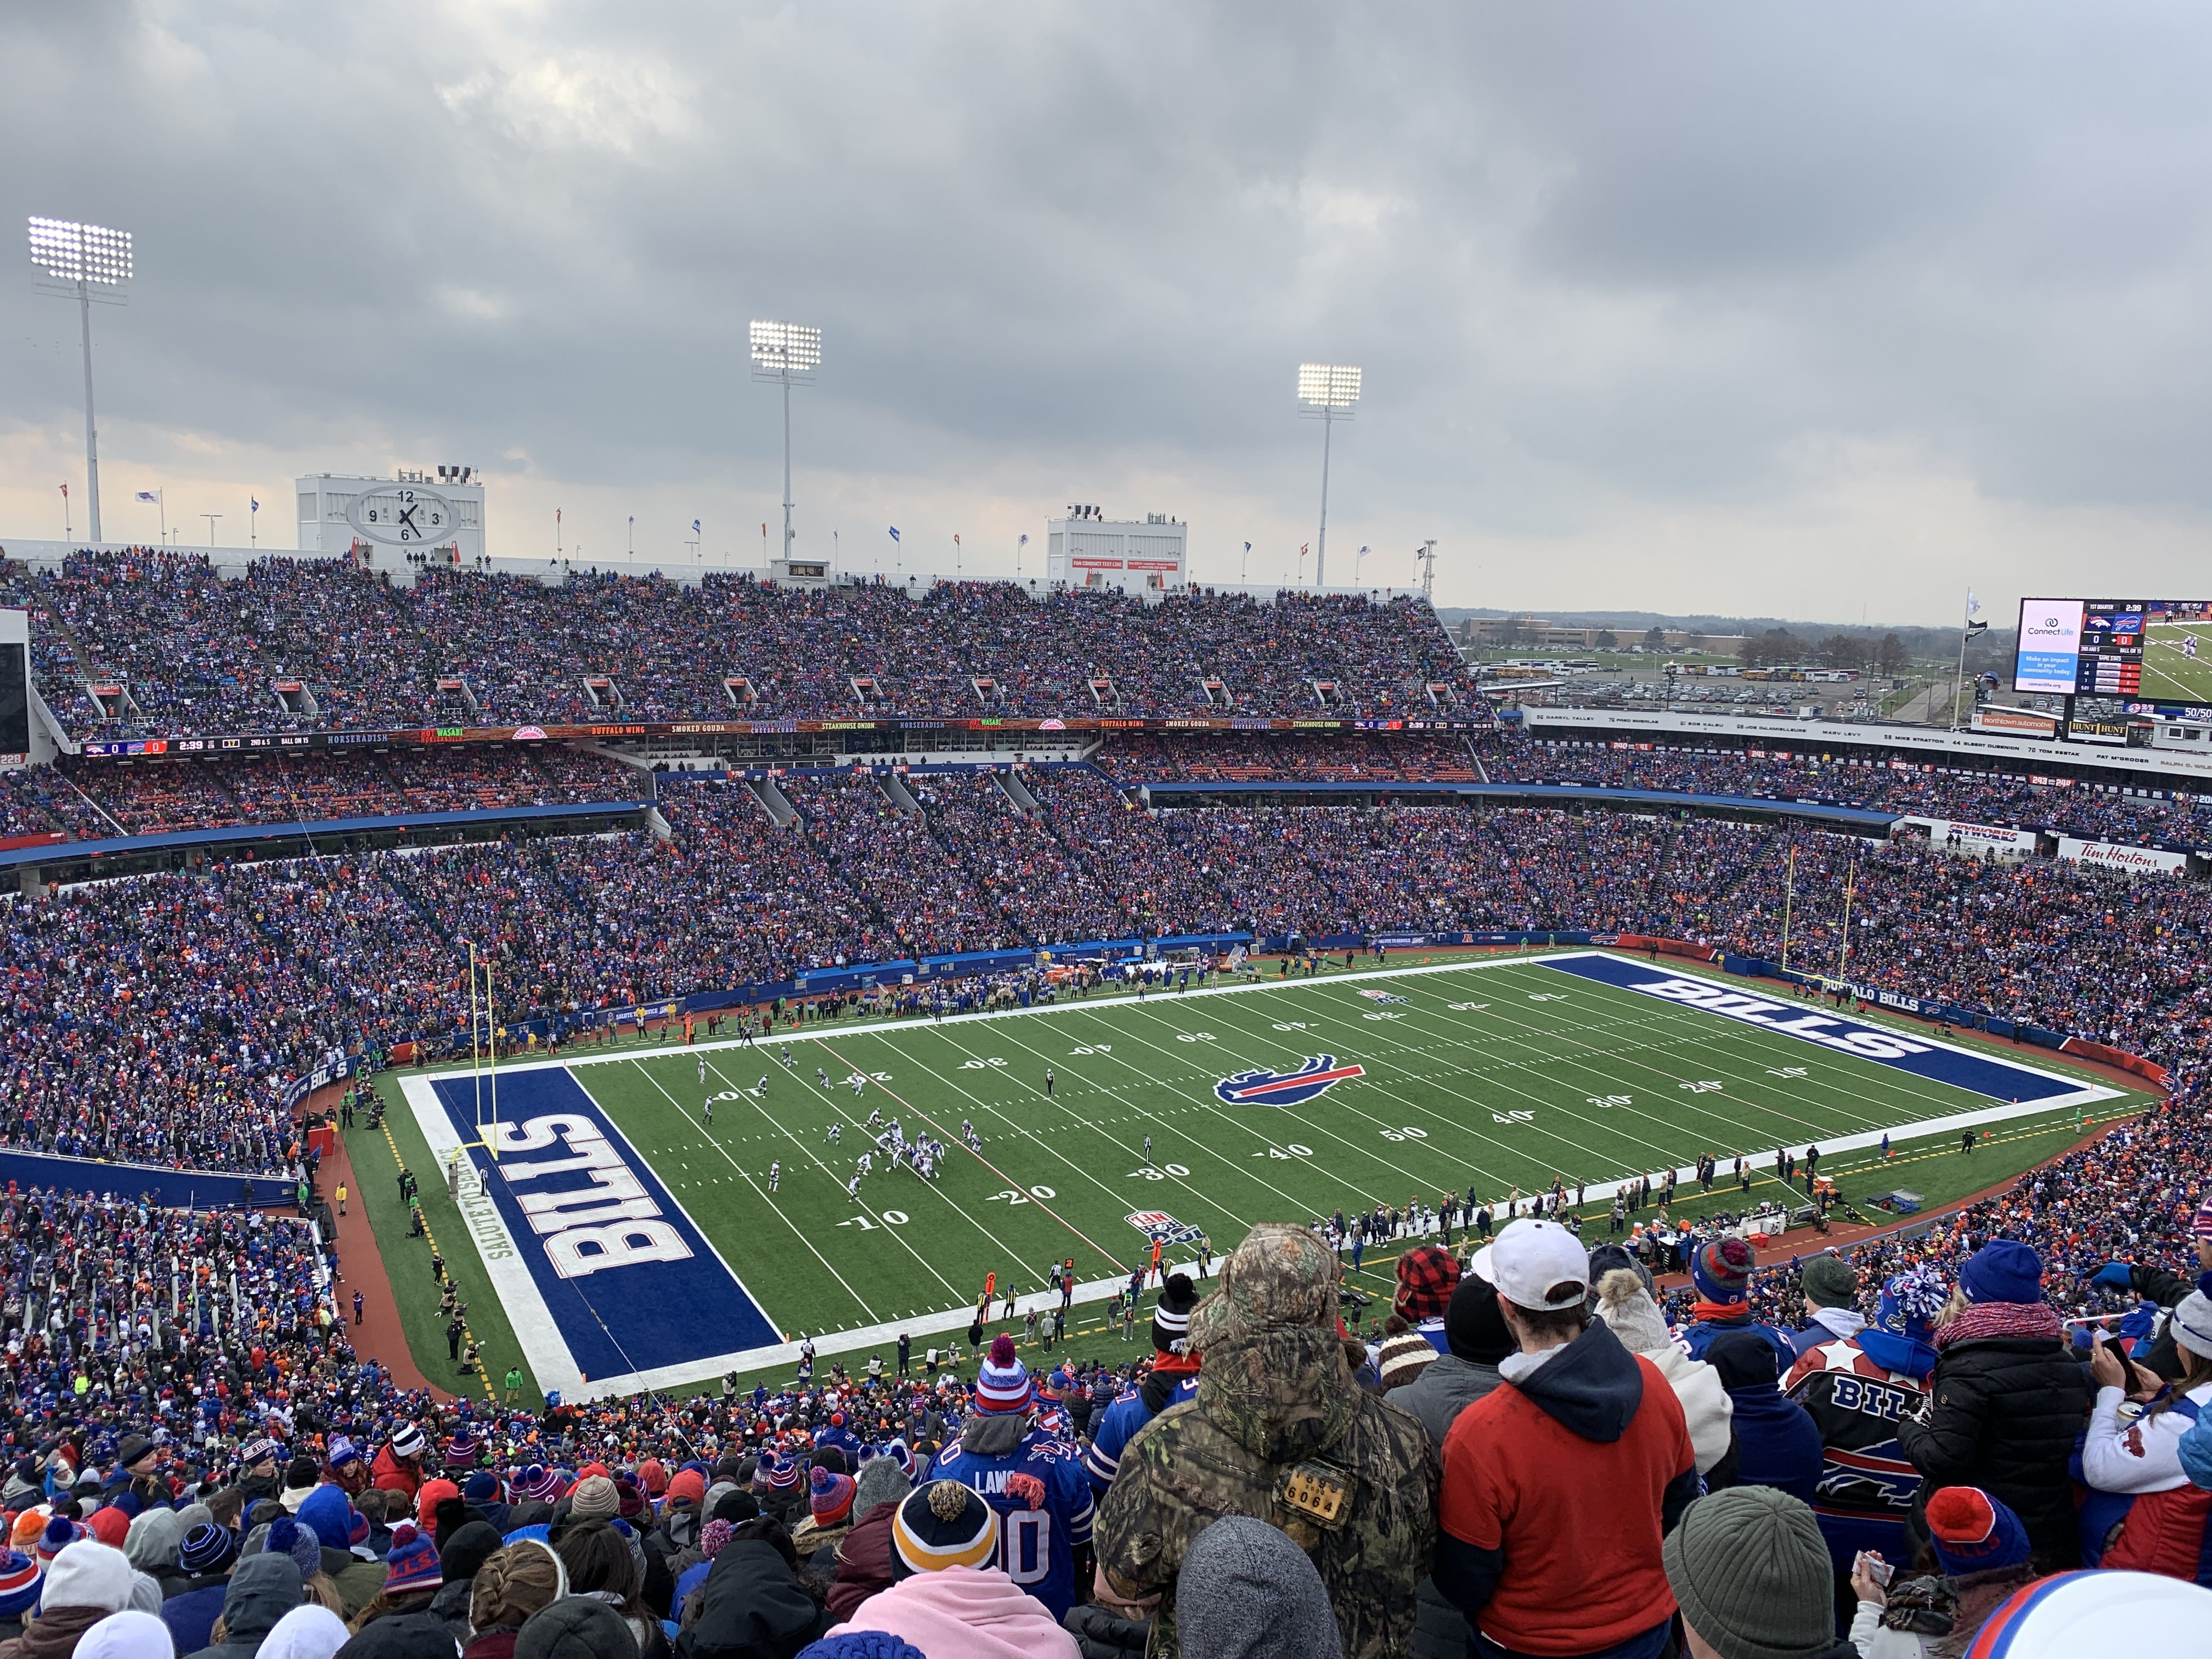 View from my seat at New Era Field during the Buffalo Bills vs Denver Broncos NFL game on Sunday, November 24, 2019.